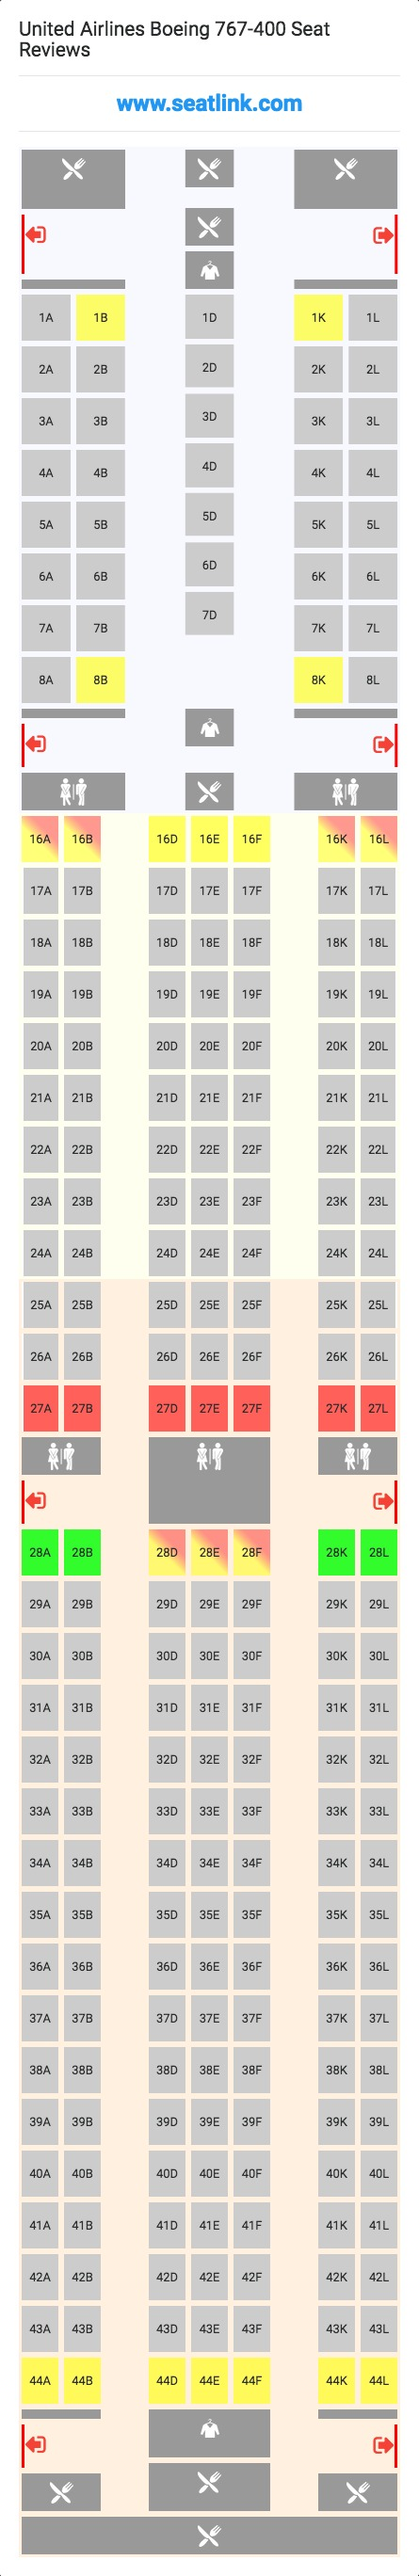 United Airlines Boeing 767 400 Seating Chart Updated